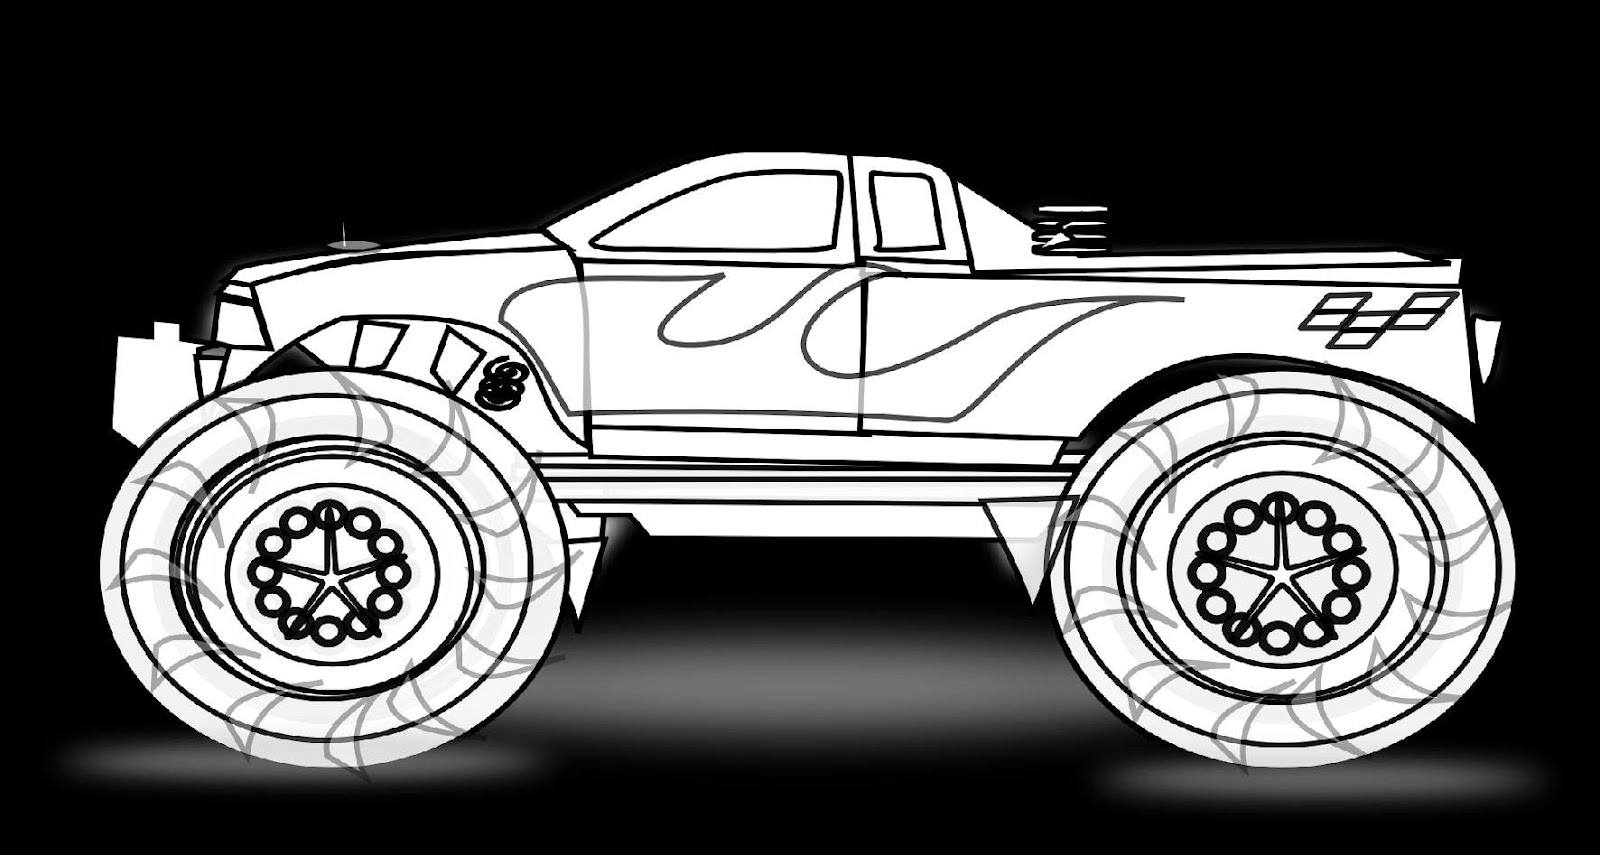 coloring pages monster truck - truck coloring sheets free coloring sheet